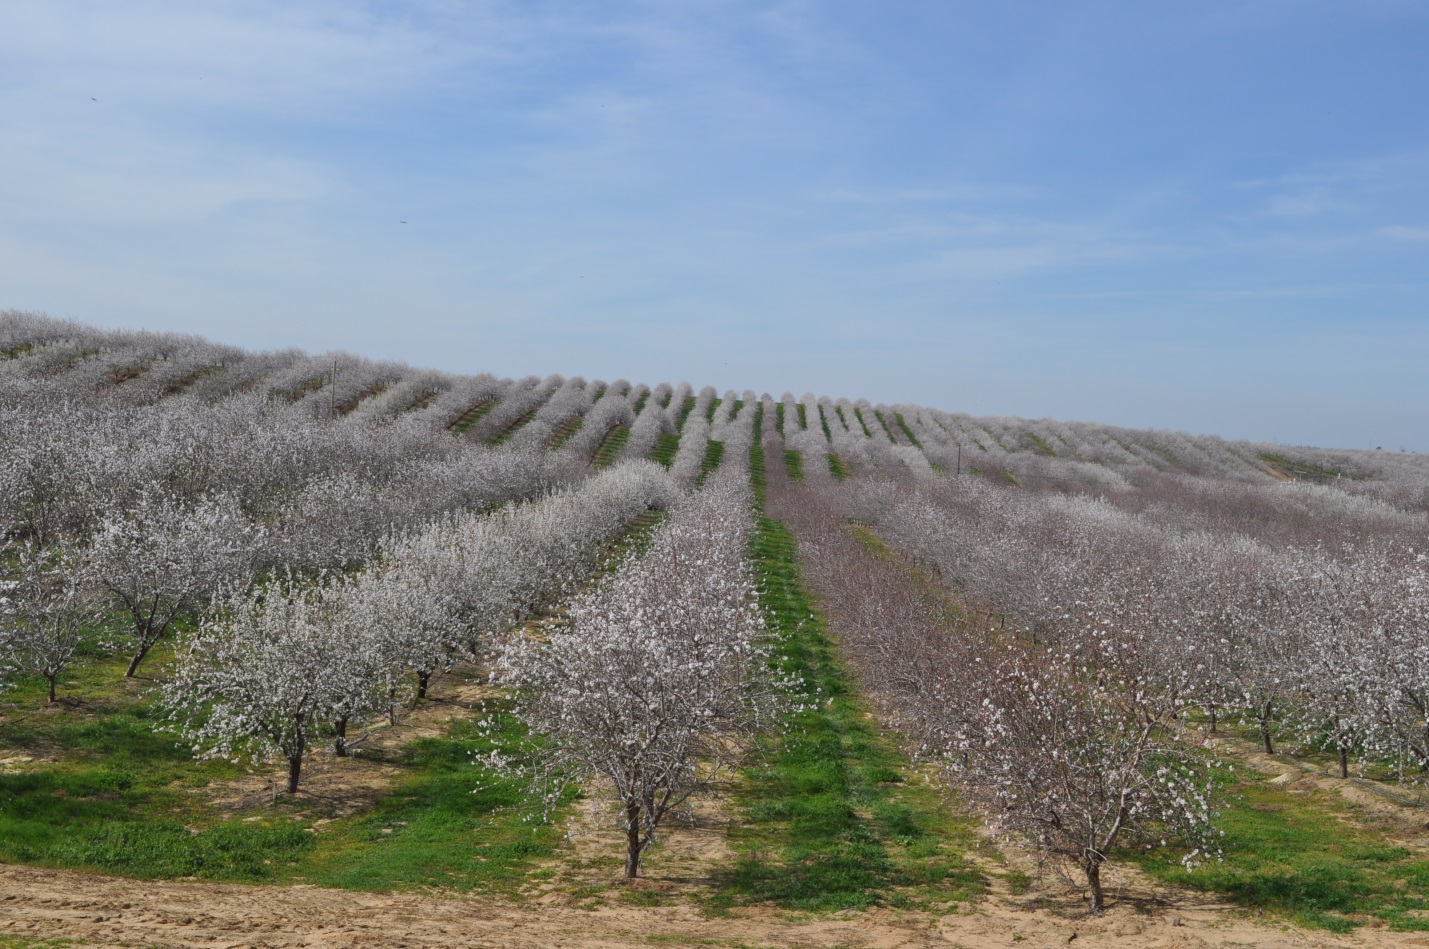 Almond prices are down amid El Nino-related cold, rain - BUZZ #2